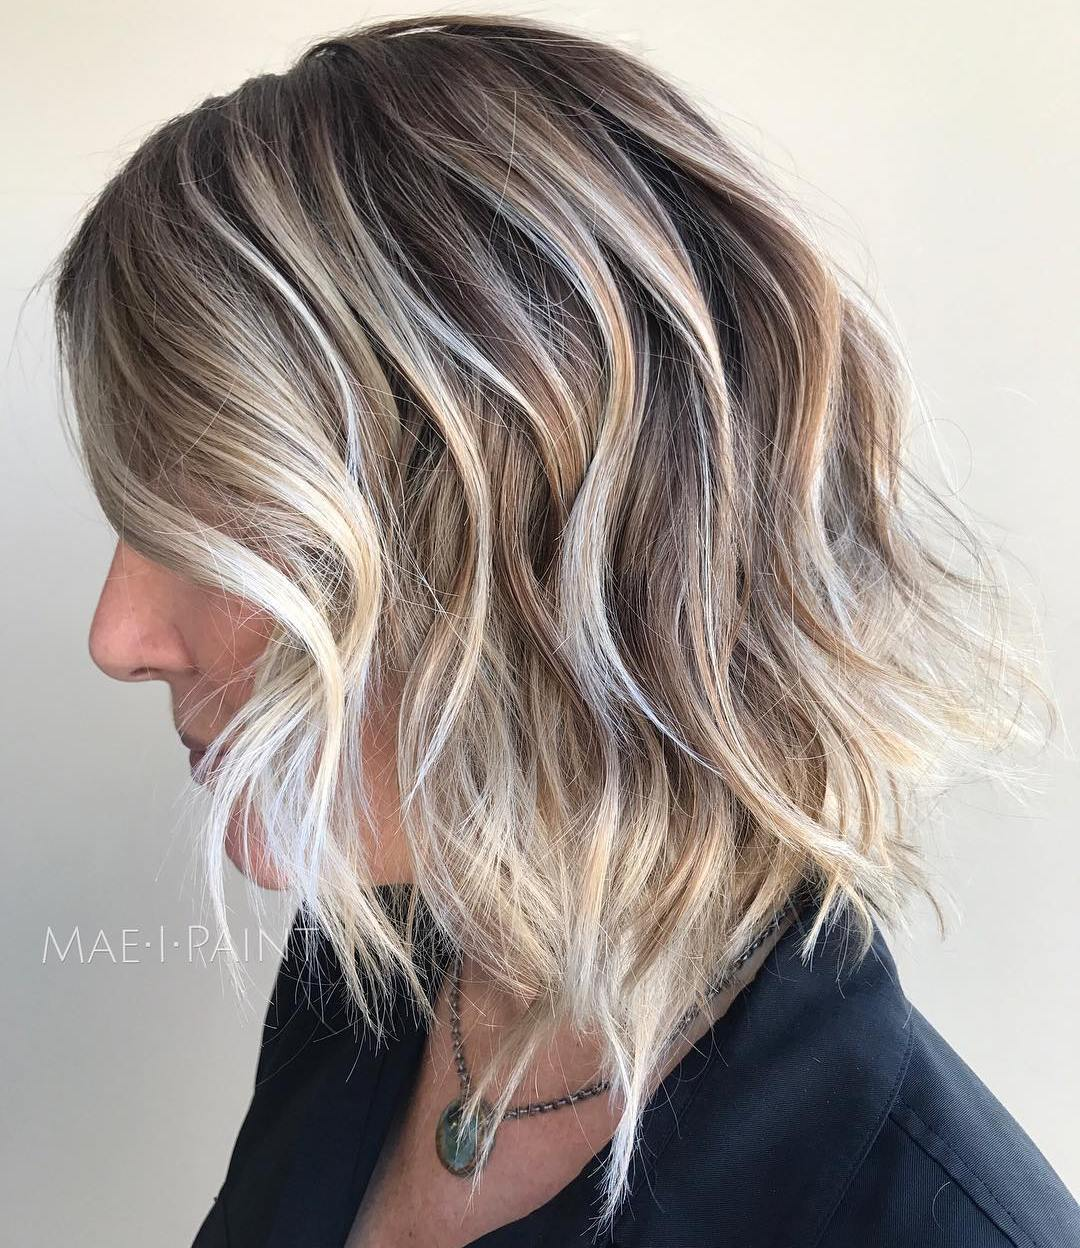 Medium Bob for Thin Curly Hair